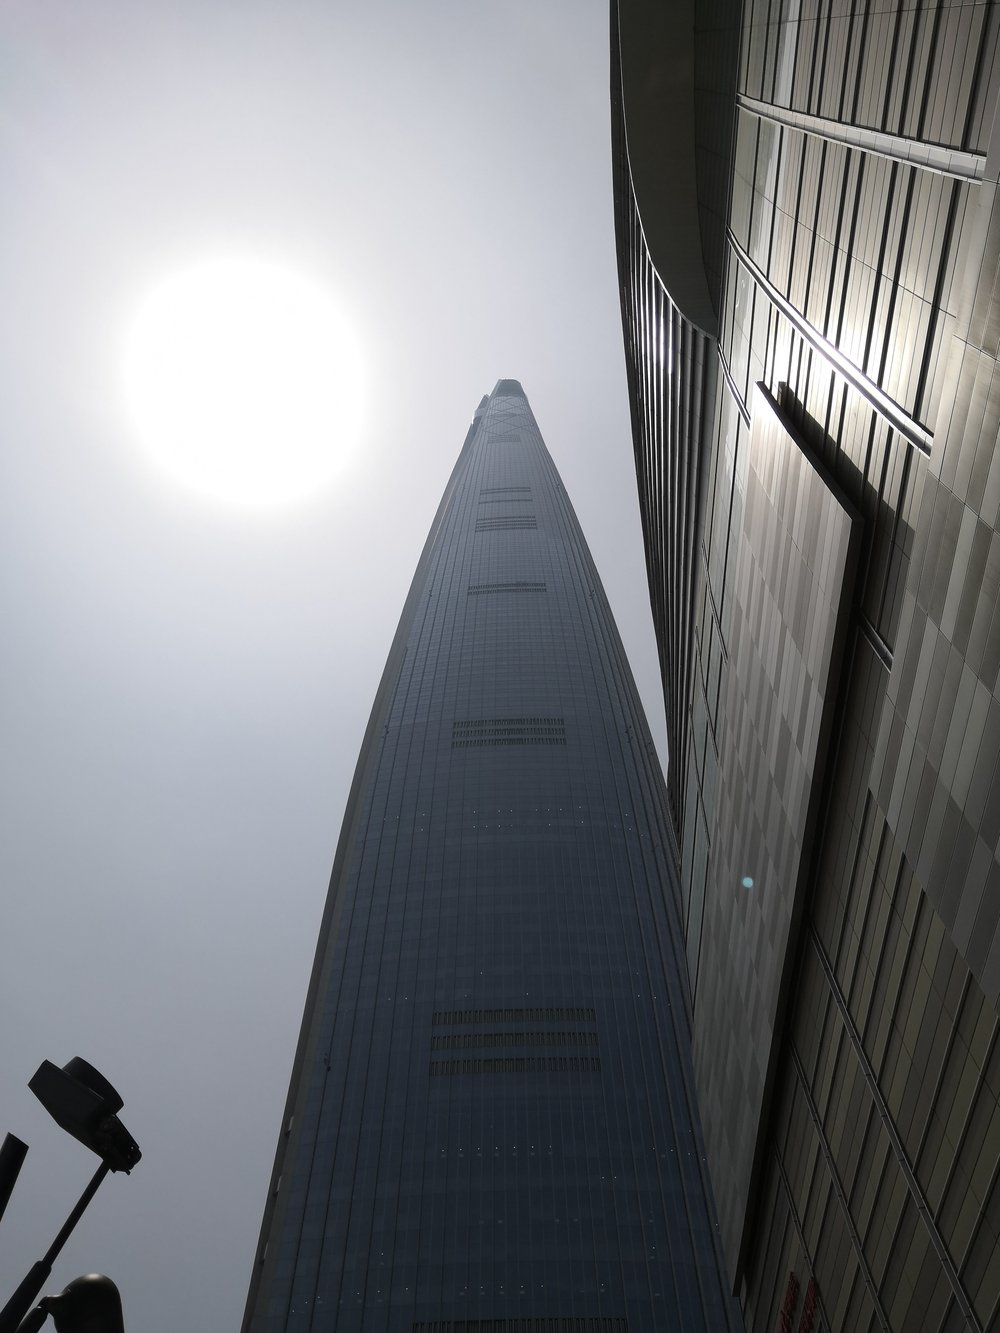 Lotte Tower